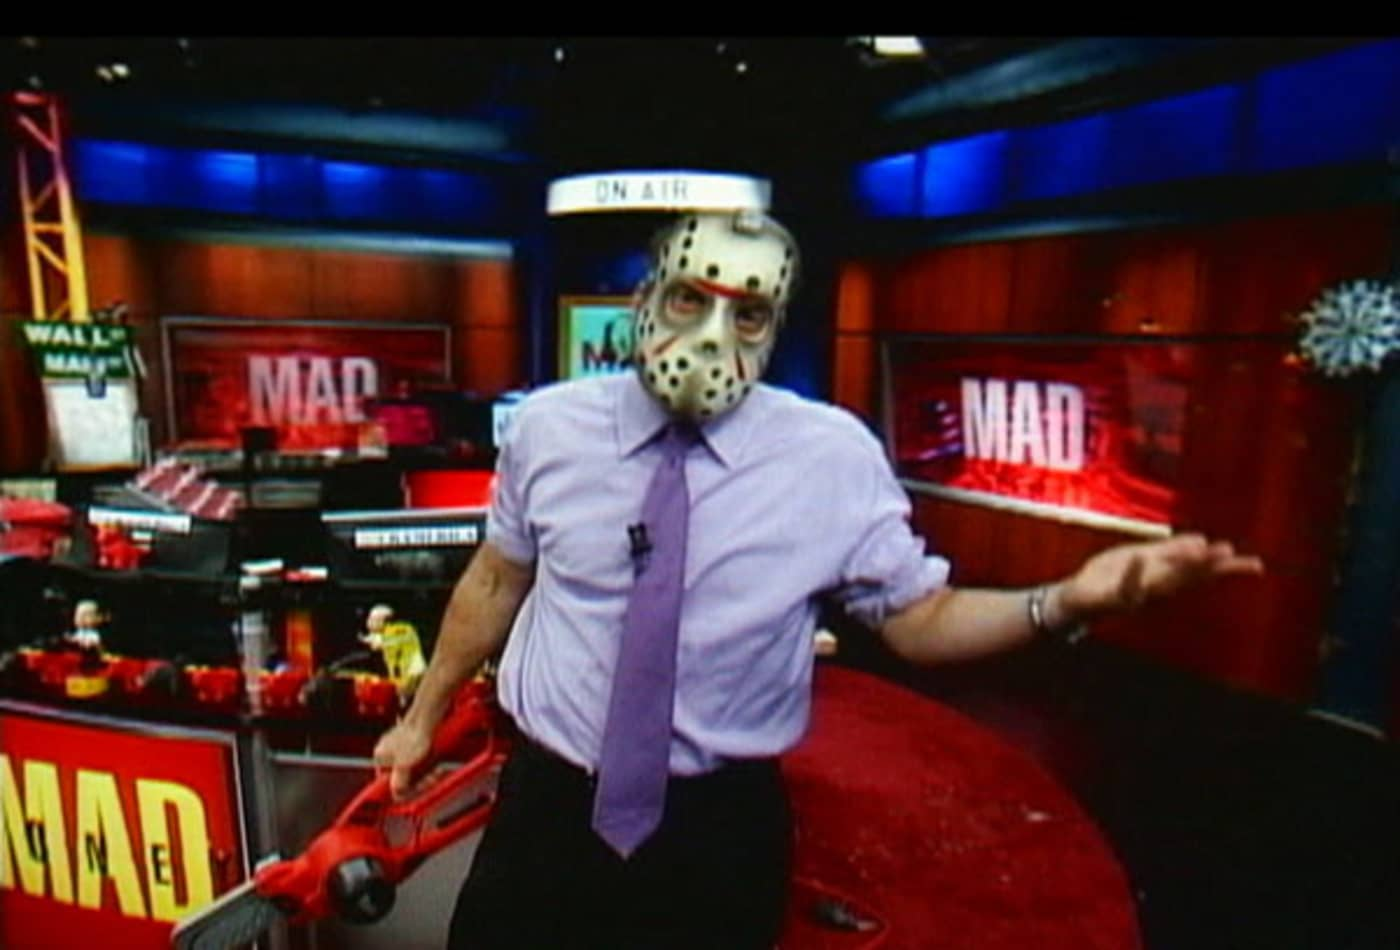 Jason-Craziest-Costume-Ideas-Jim-Cramer.jpg